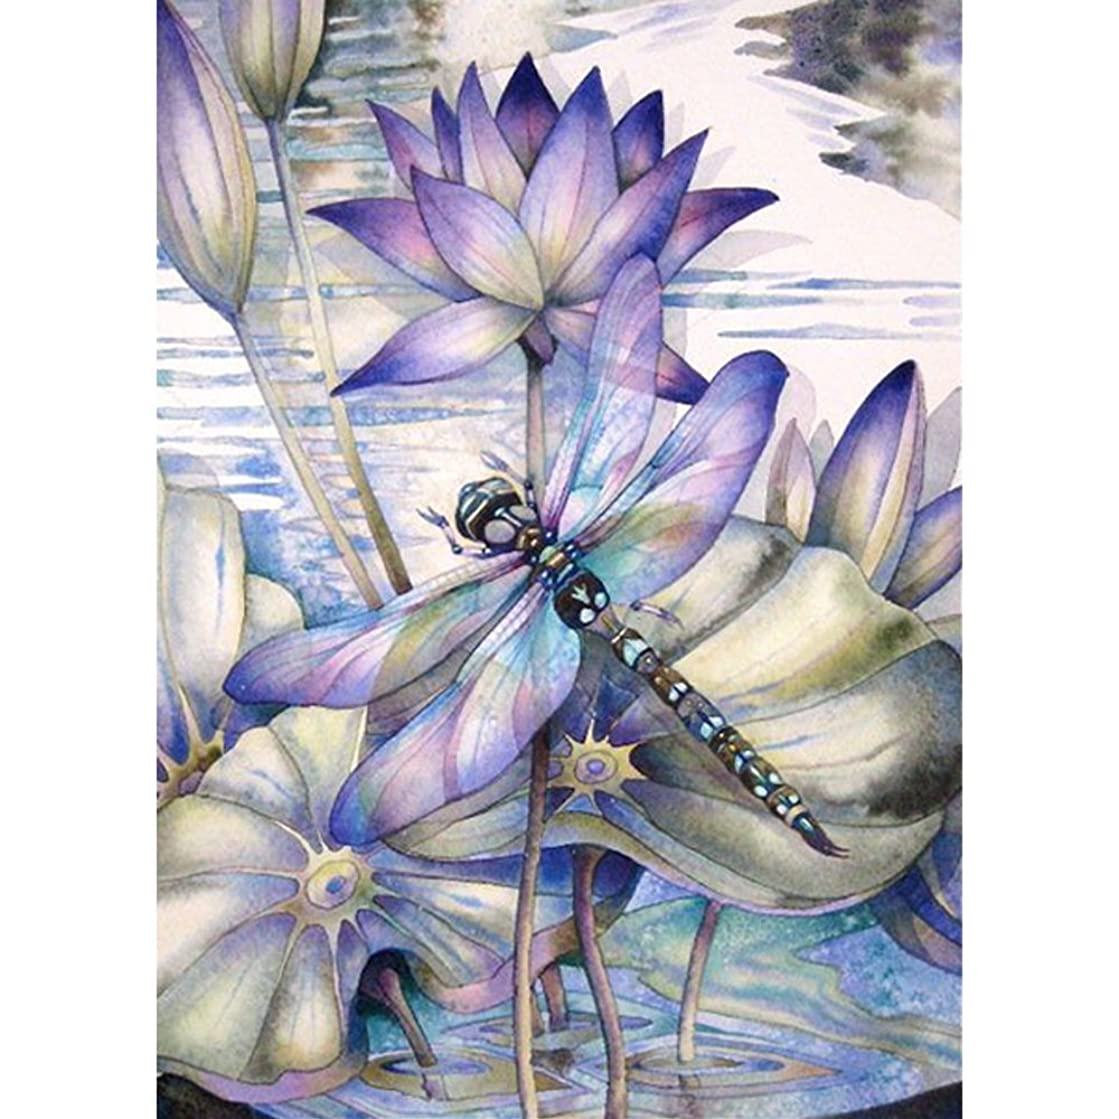 DIY 5D Diamond Painting by Number Kits, Crystal Rhinestone Embroidery Paint with Diamonds, Full Drill Canvas Art Picture for Home Wall Decor, Dragonfly, 9.84